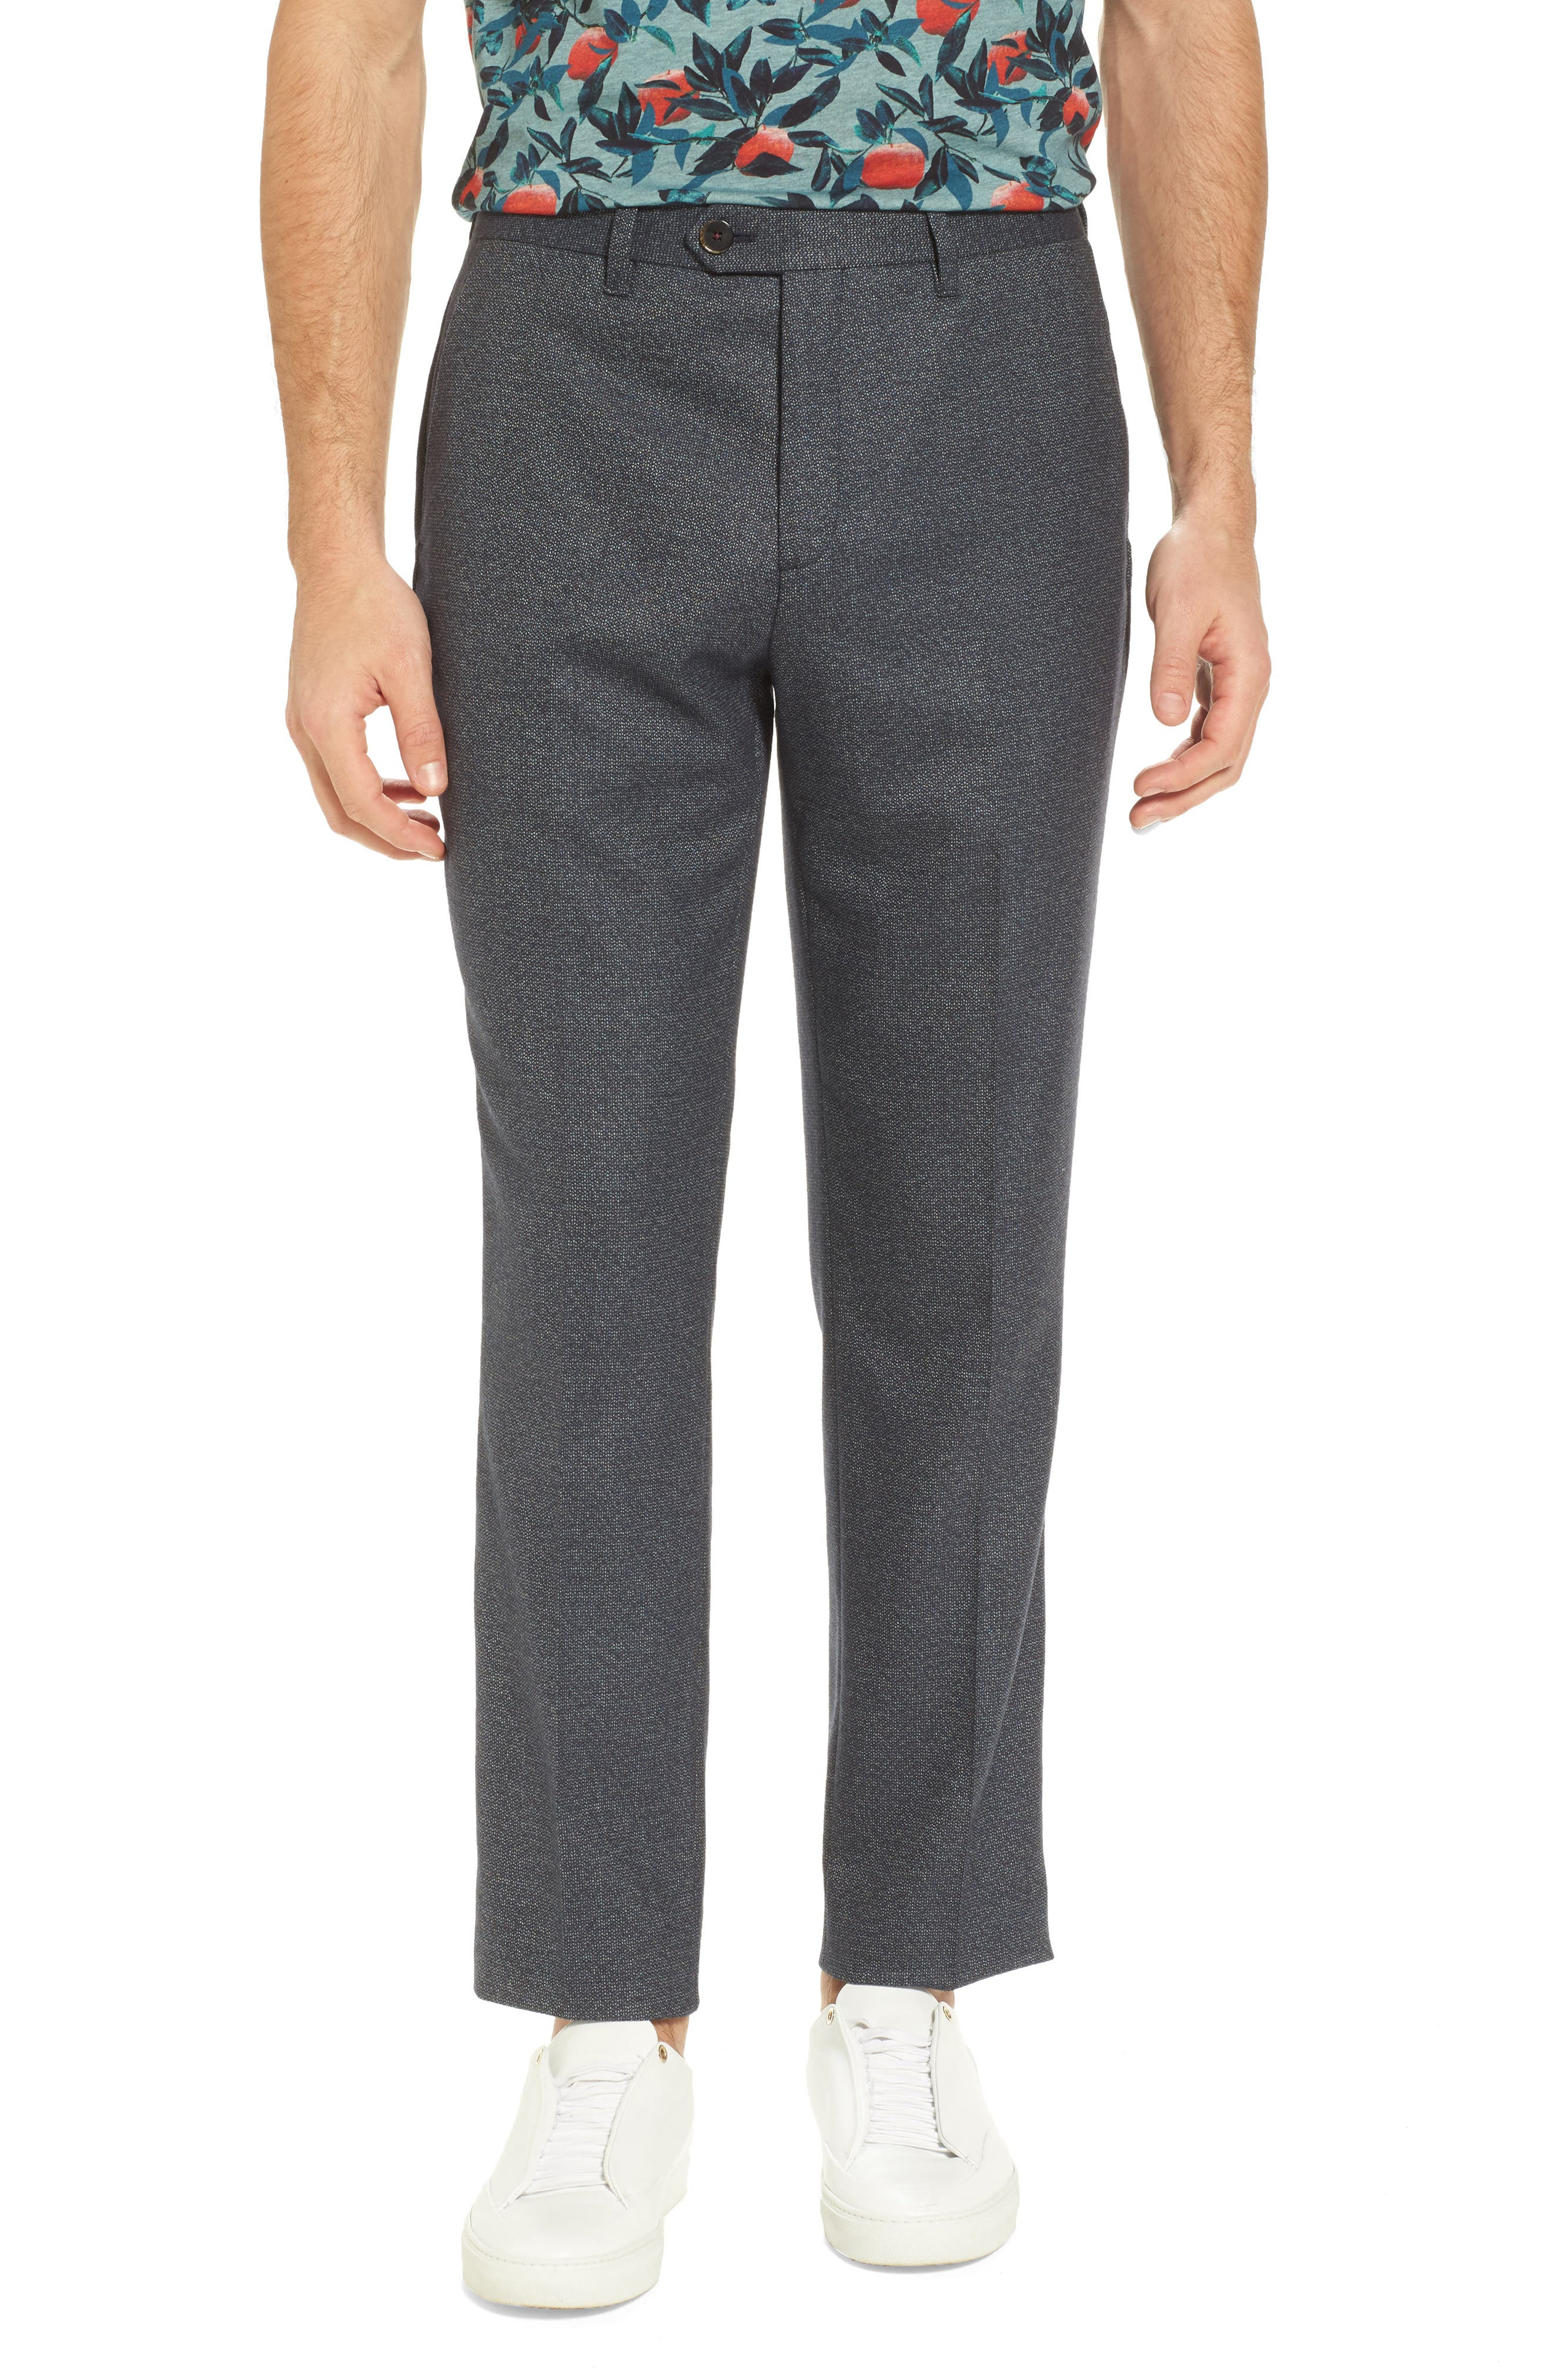 Beektro Trim Fit Trousers,                         Main,                         color, Navy